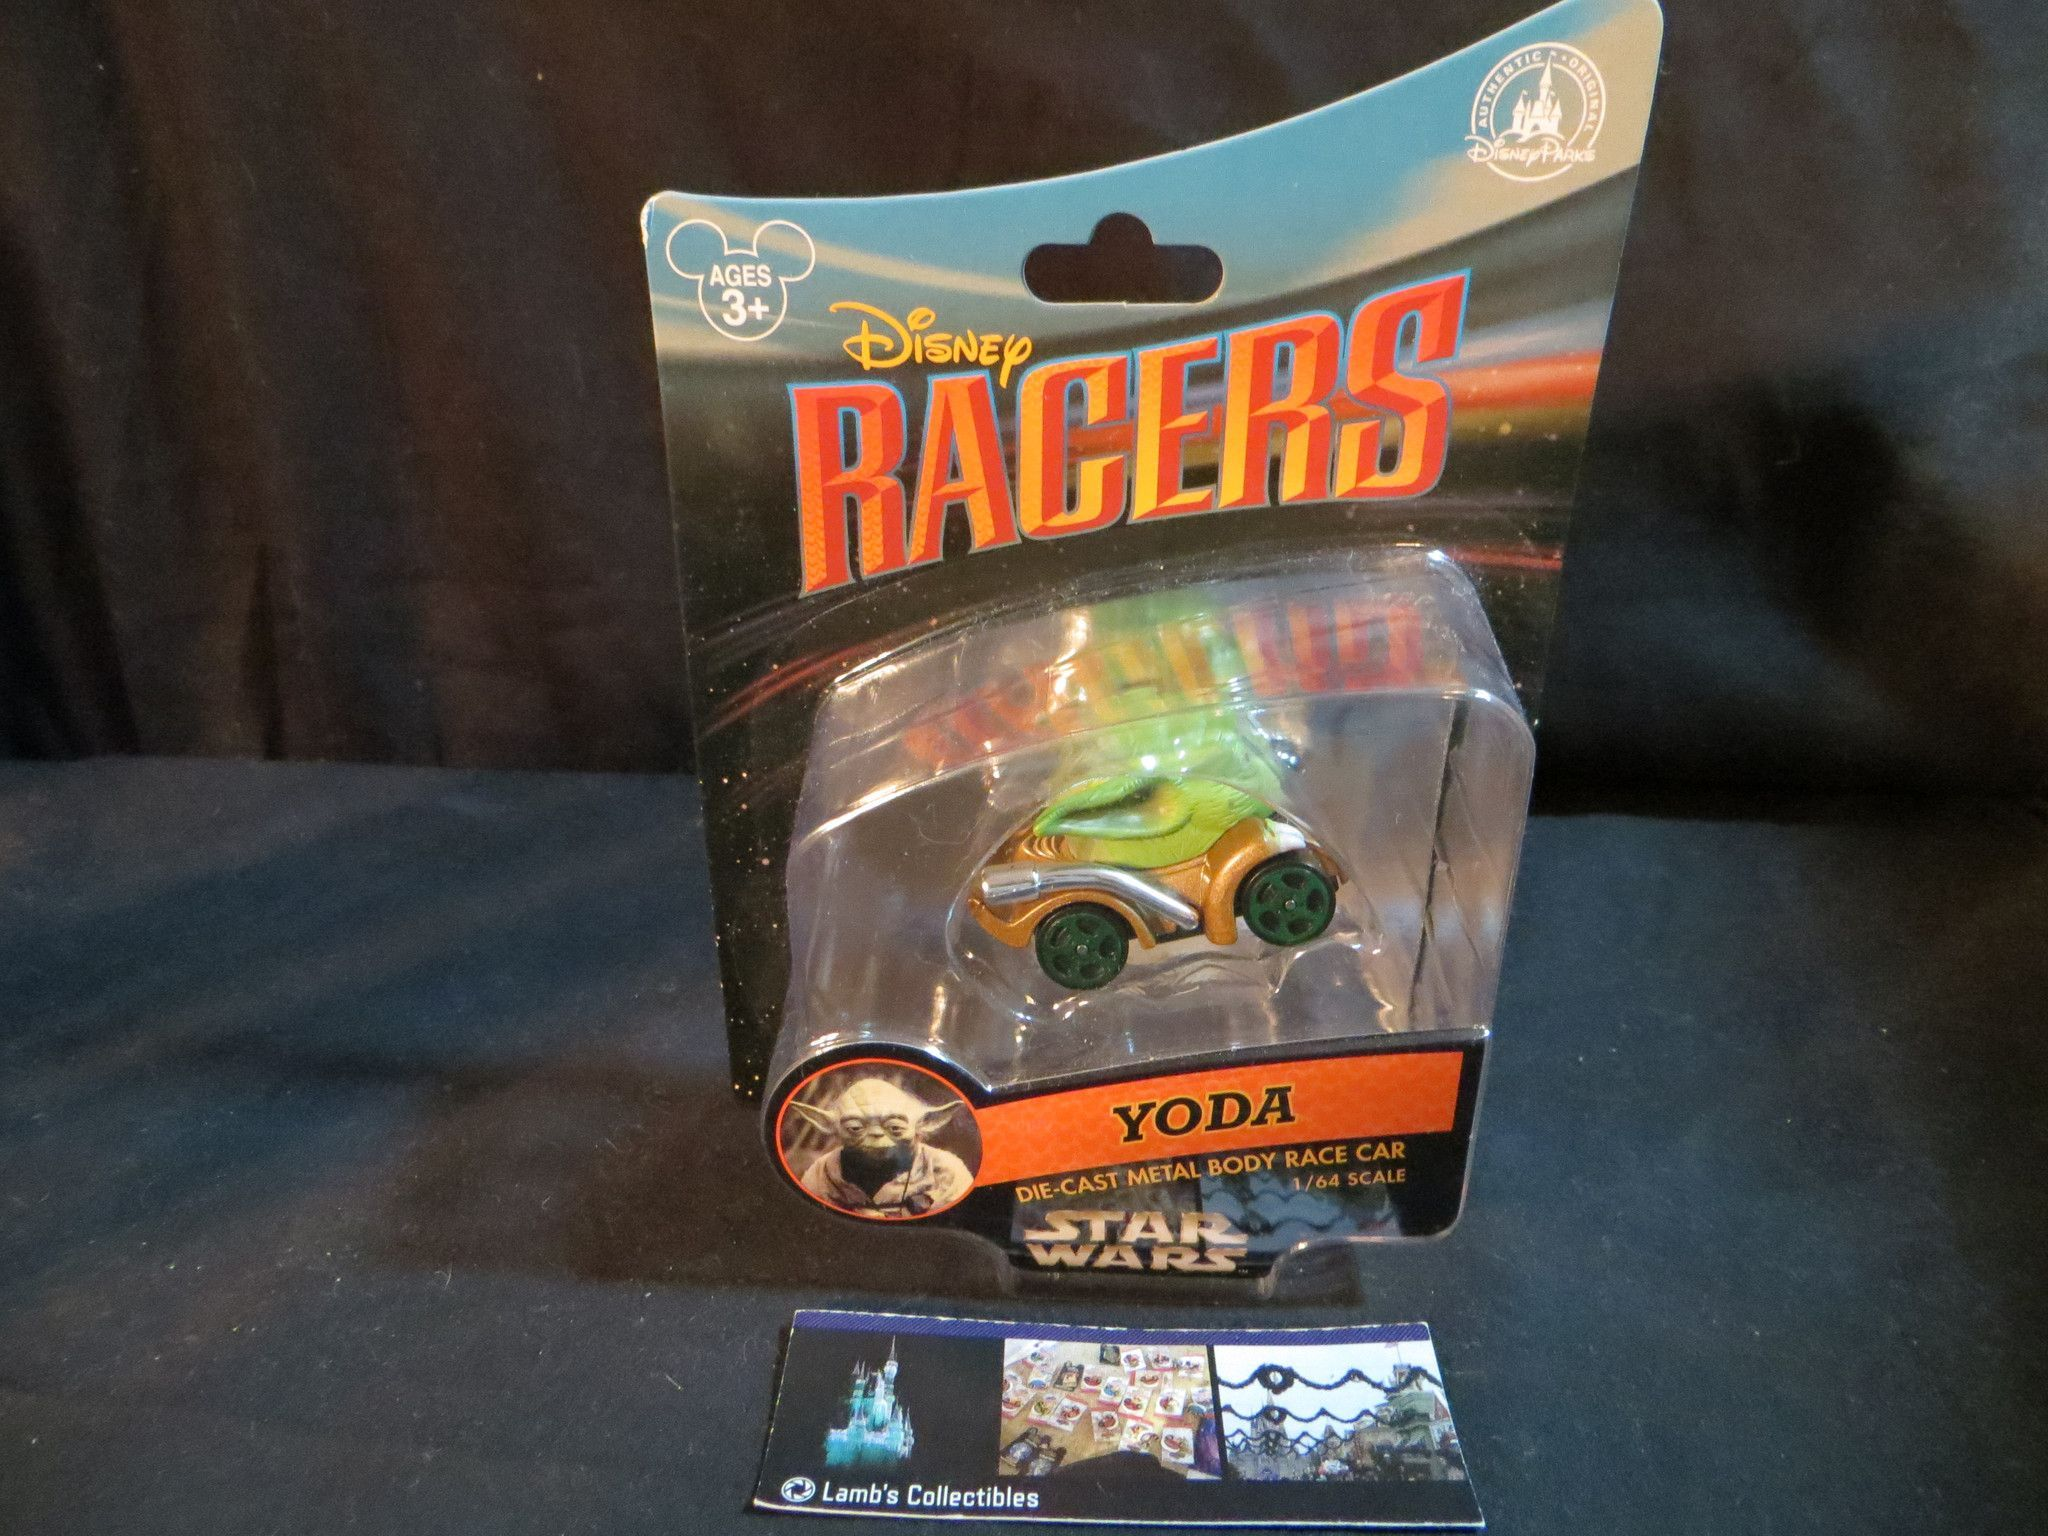 Disney Parks Authentic Yoda Star Wars Racers die-cast cast metal body race car